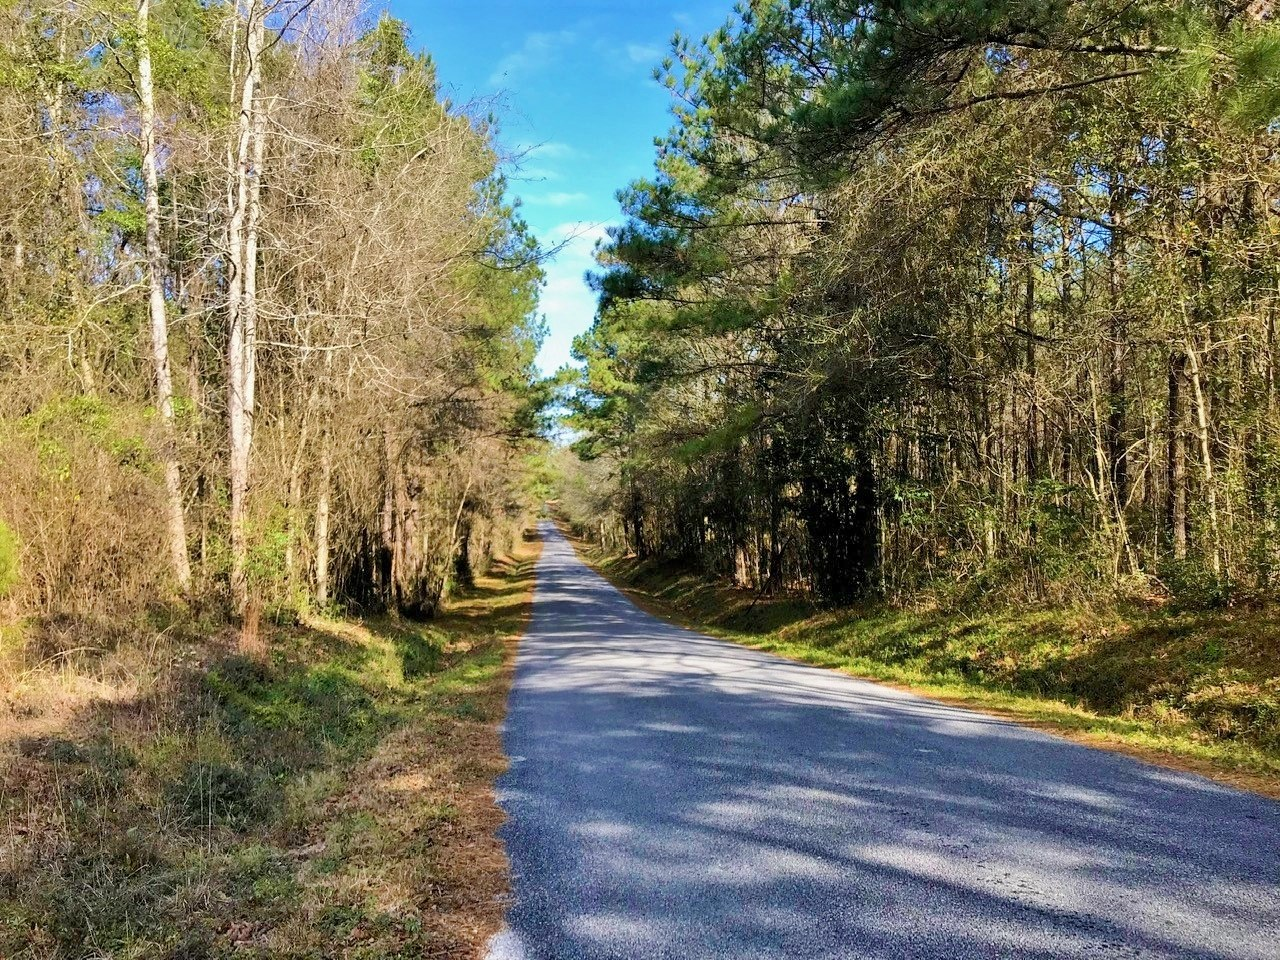 82 Acres Timberland Investment Property for Sale Seminary MS